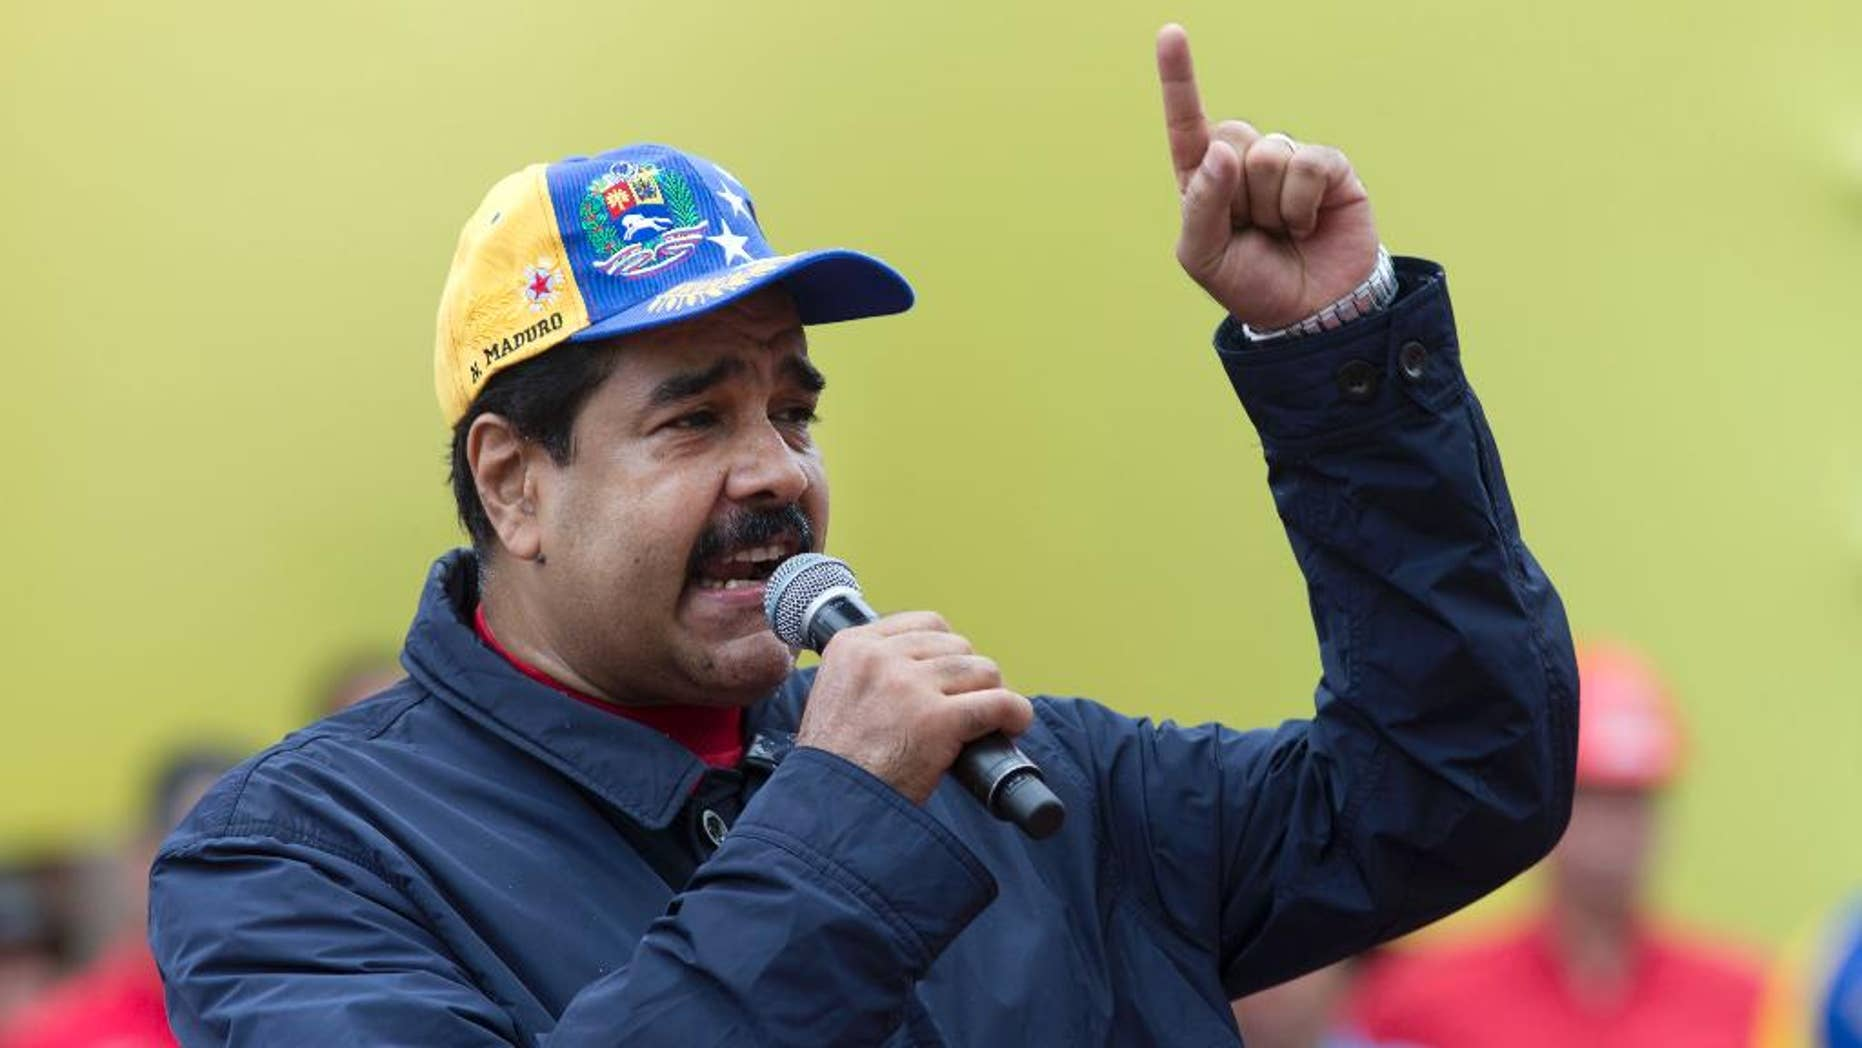 Venezuela's President Nicolas Maduro speaks during a May Day march in Caracas, Venezuela, Sunday, May 1, 2016. President Maduro ordered a 30 percent increase in the minimum wage, the latest move by the socialist government to grapple with high inflation and economic stagnation. (AP Photo/Ariana Cubillos)